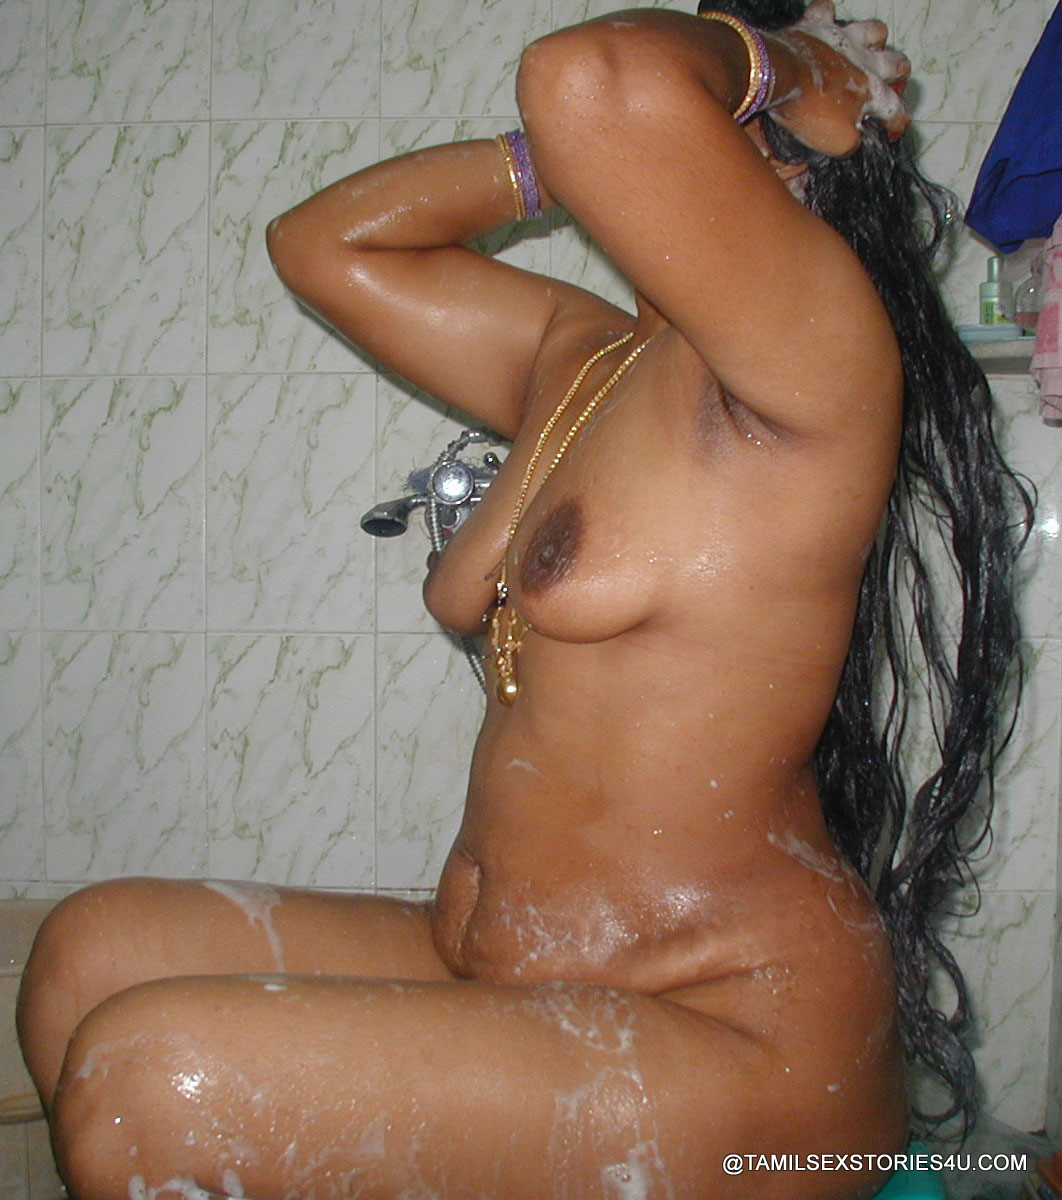 Tamil Dirty Sex Pictures - The Best Tamil Sex Website -4868